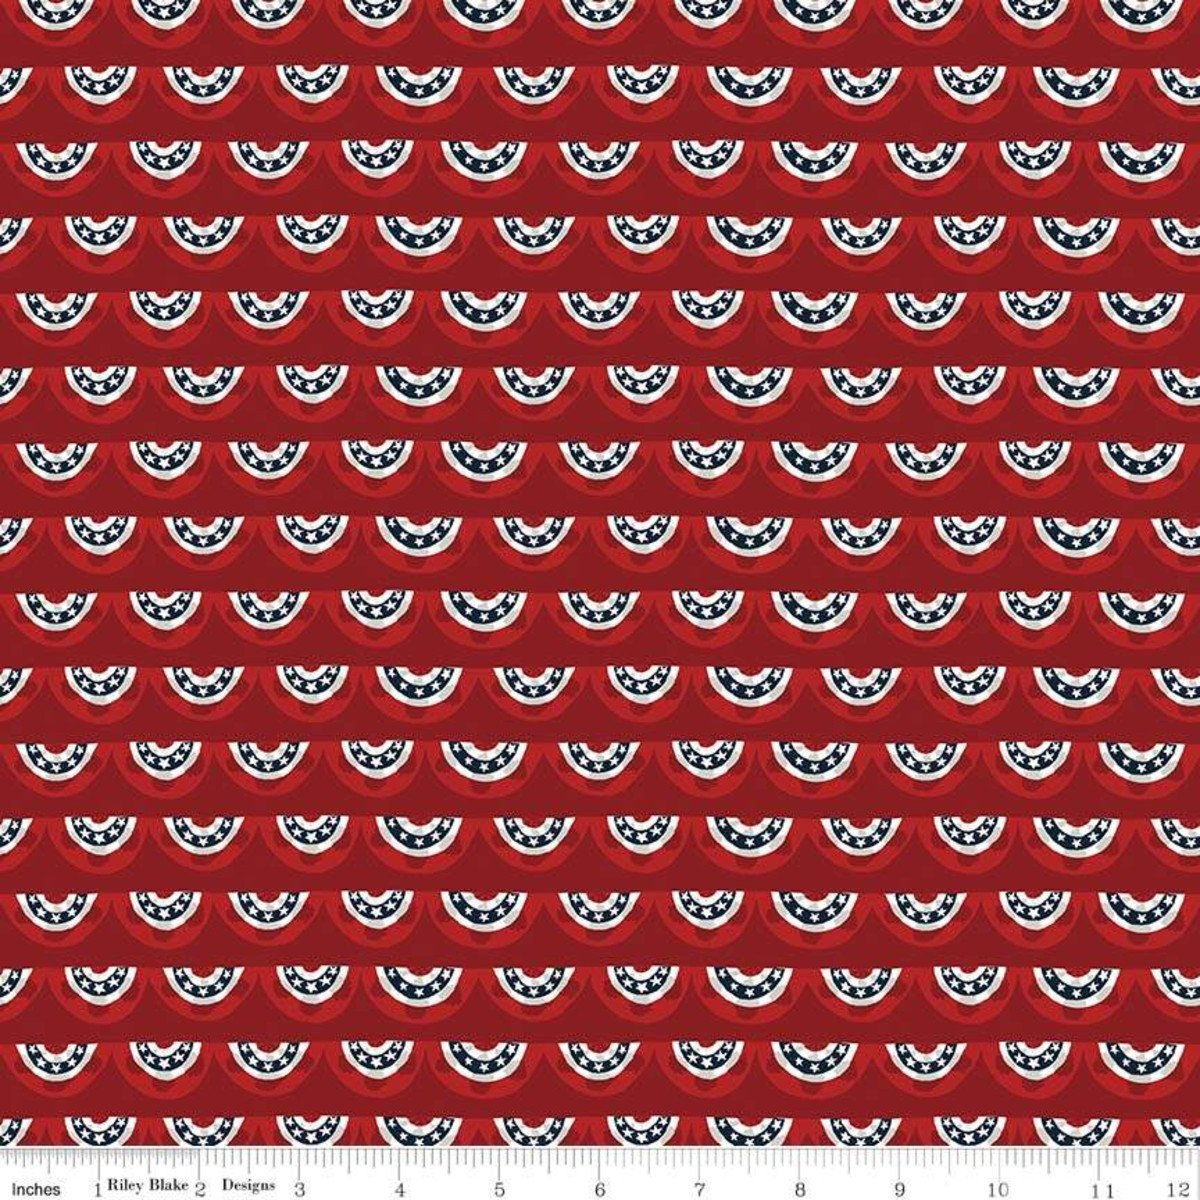 Celebrate America - Banners - Red